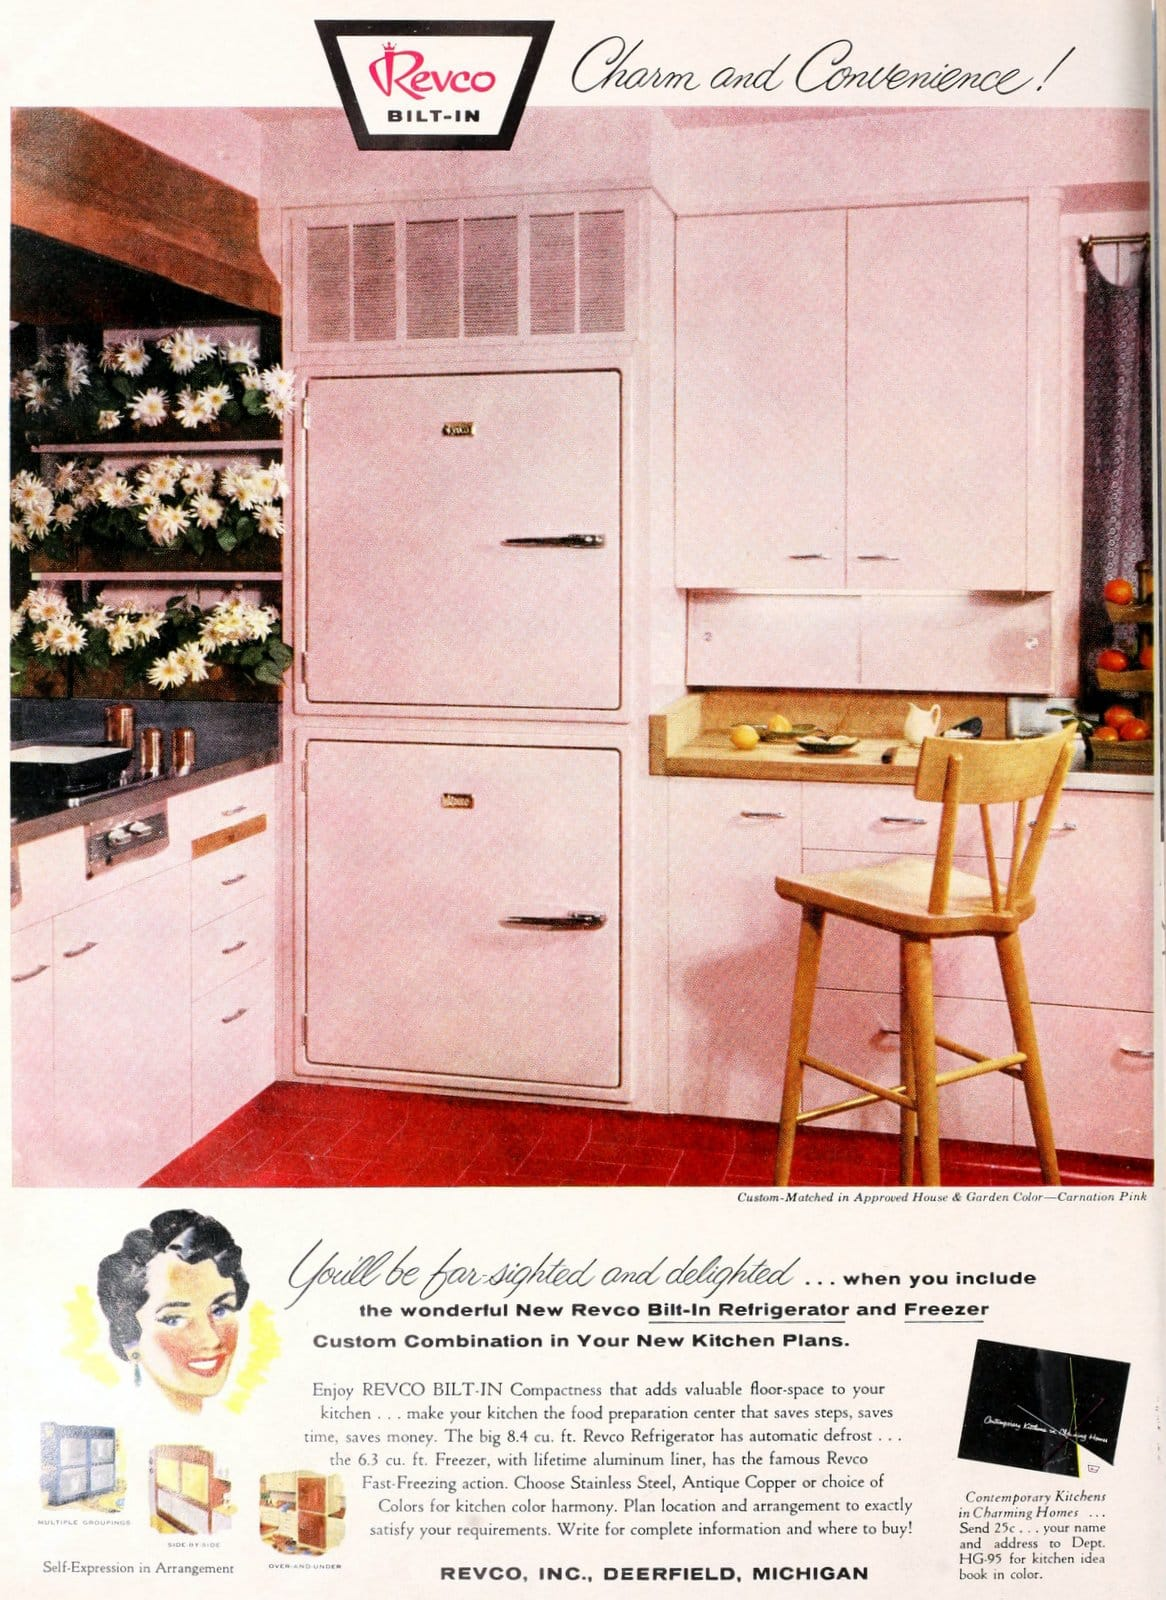 Old-fashioned pink kitchen fridge and decor from 1955